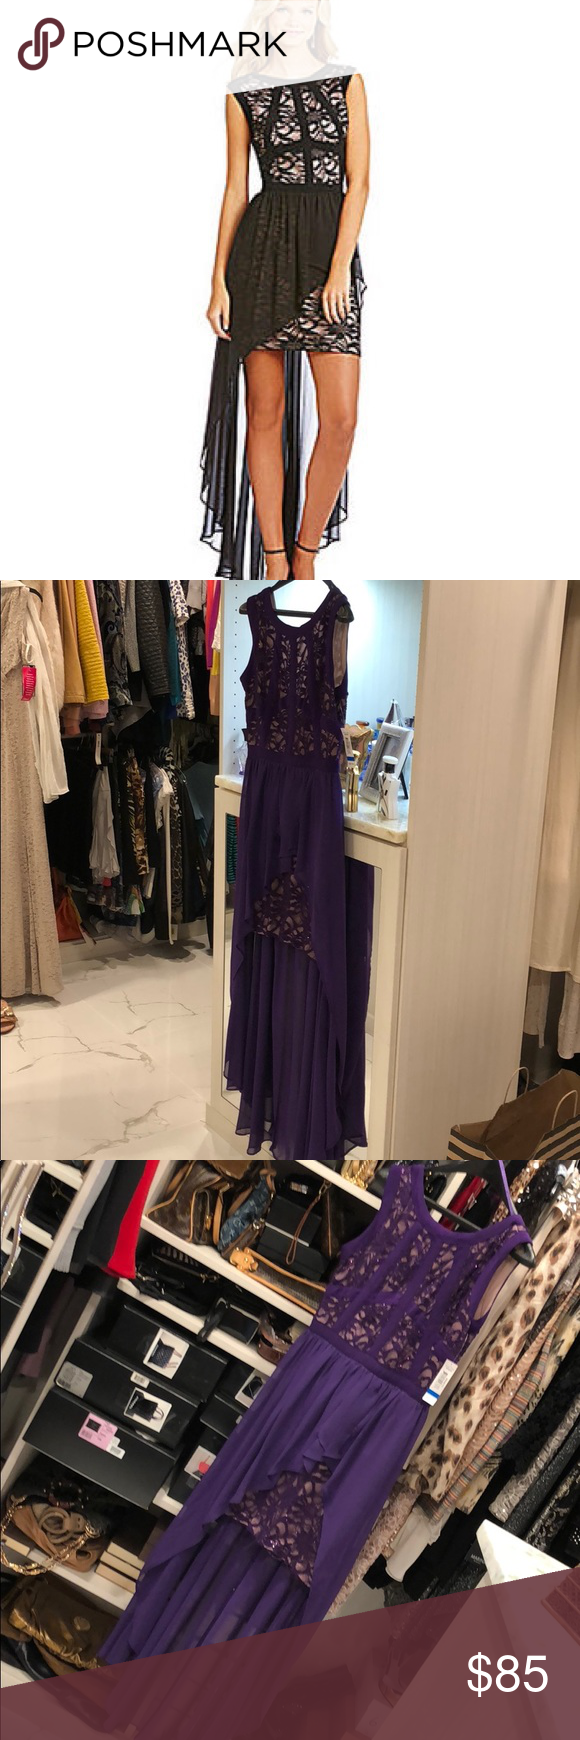 Morgan u co hi lo prom dress in deep purple boutique my posh